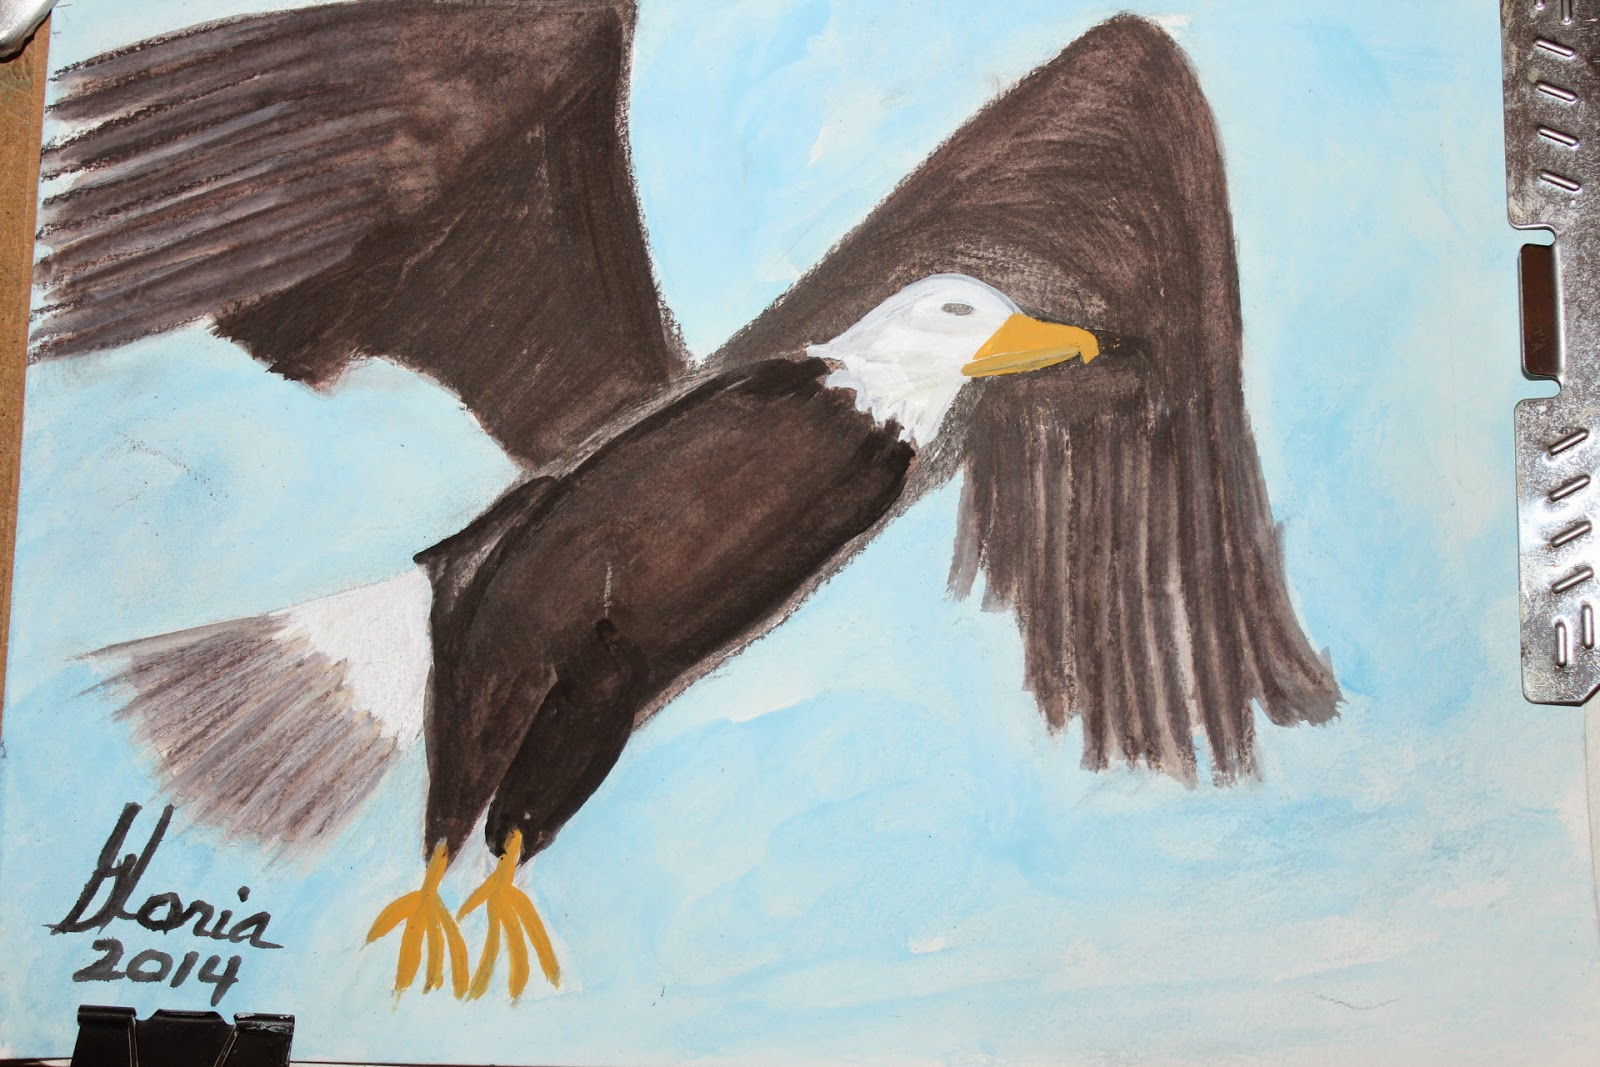 Eagle landing sketch by Gloria Poole of Missouri 5 June 2014